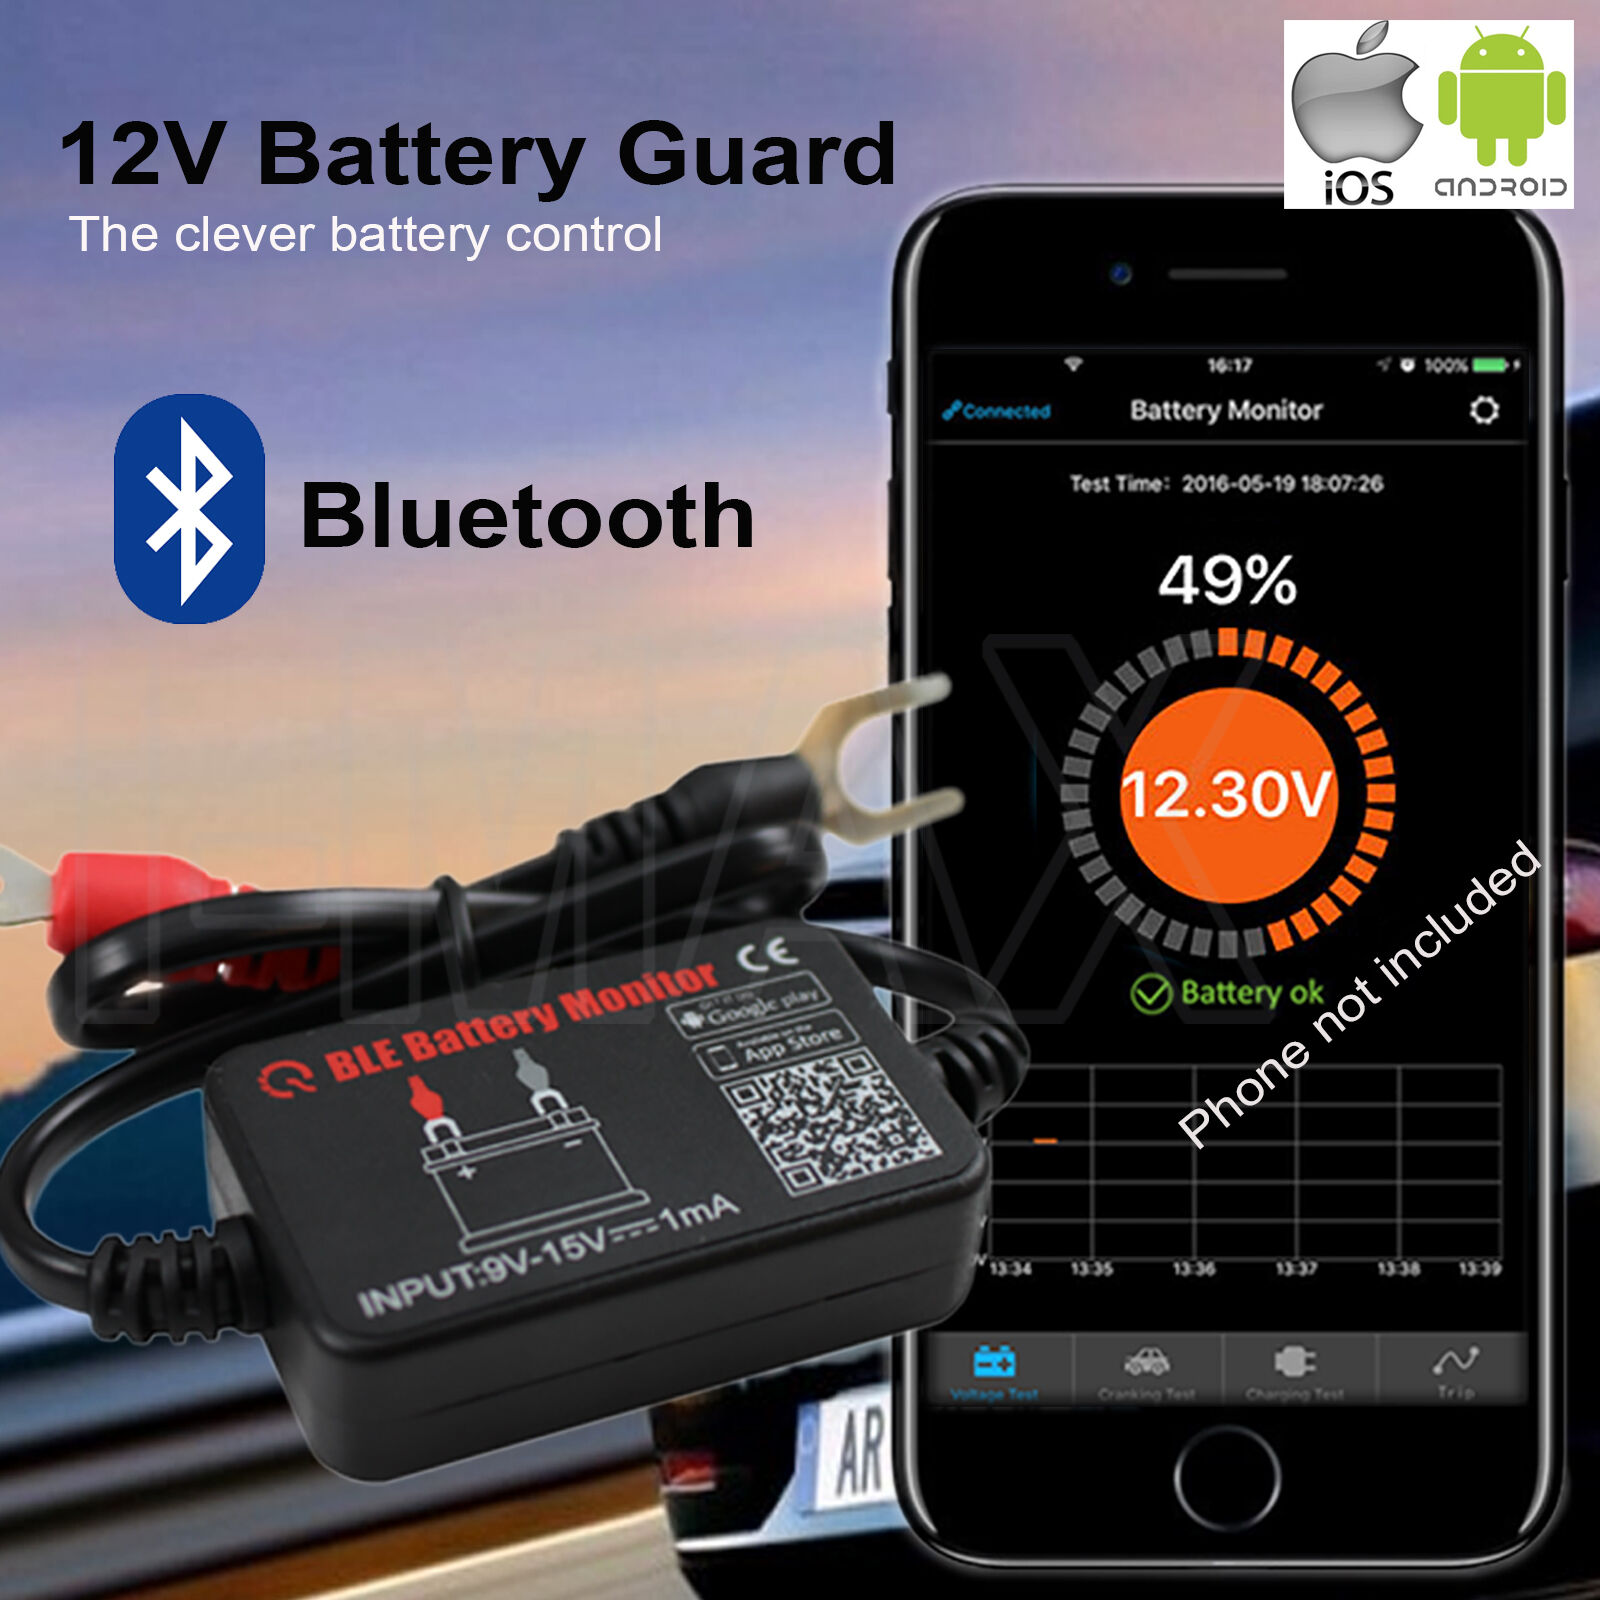 12v Voltage Vehicle Battery Monitor Bluetooth 40 Meter Tester Phone For Norton Secured Powered By Verisign